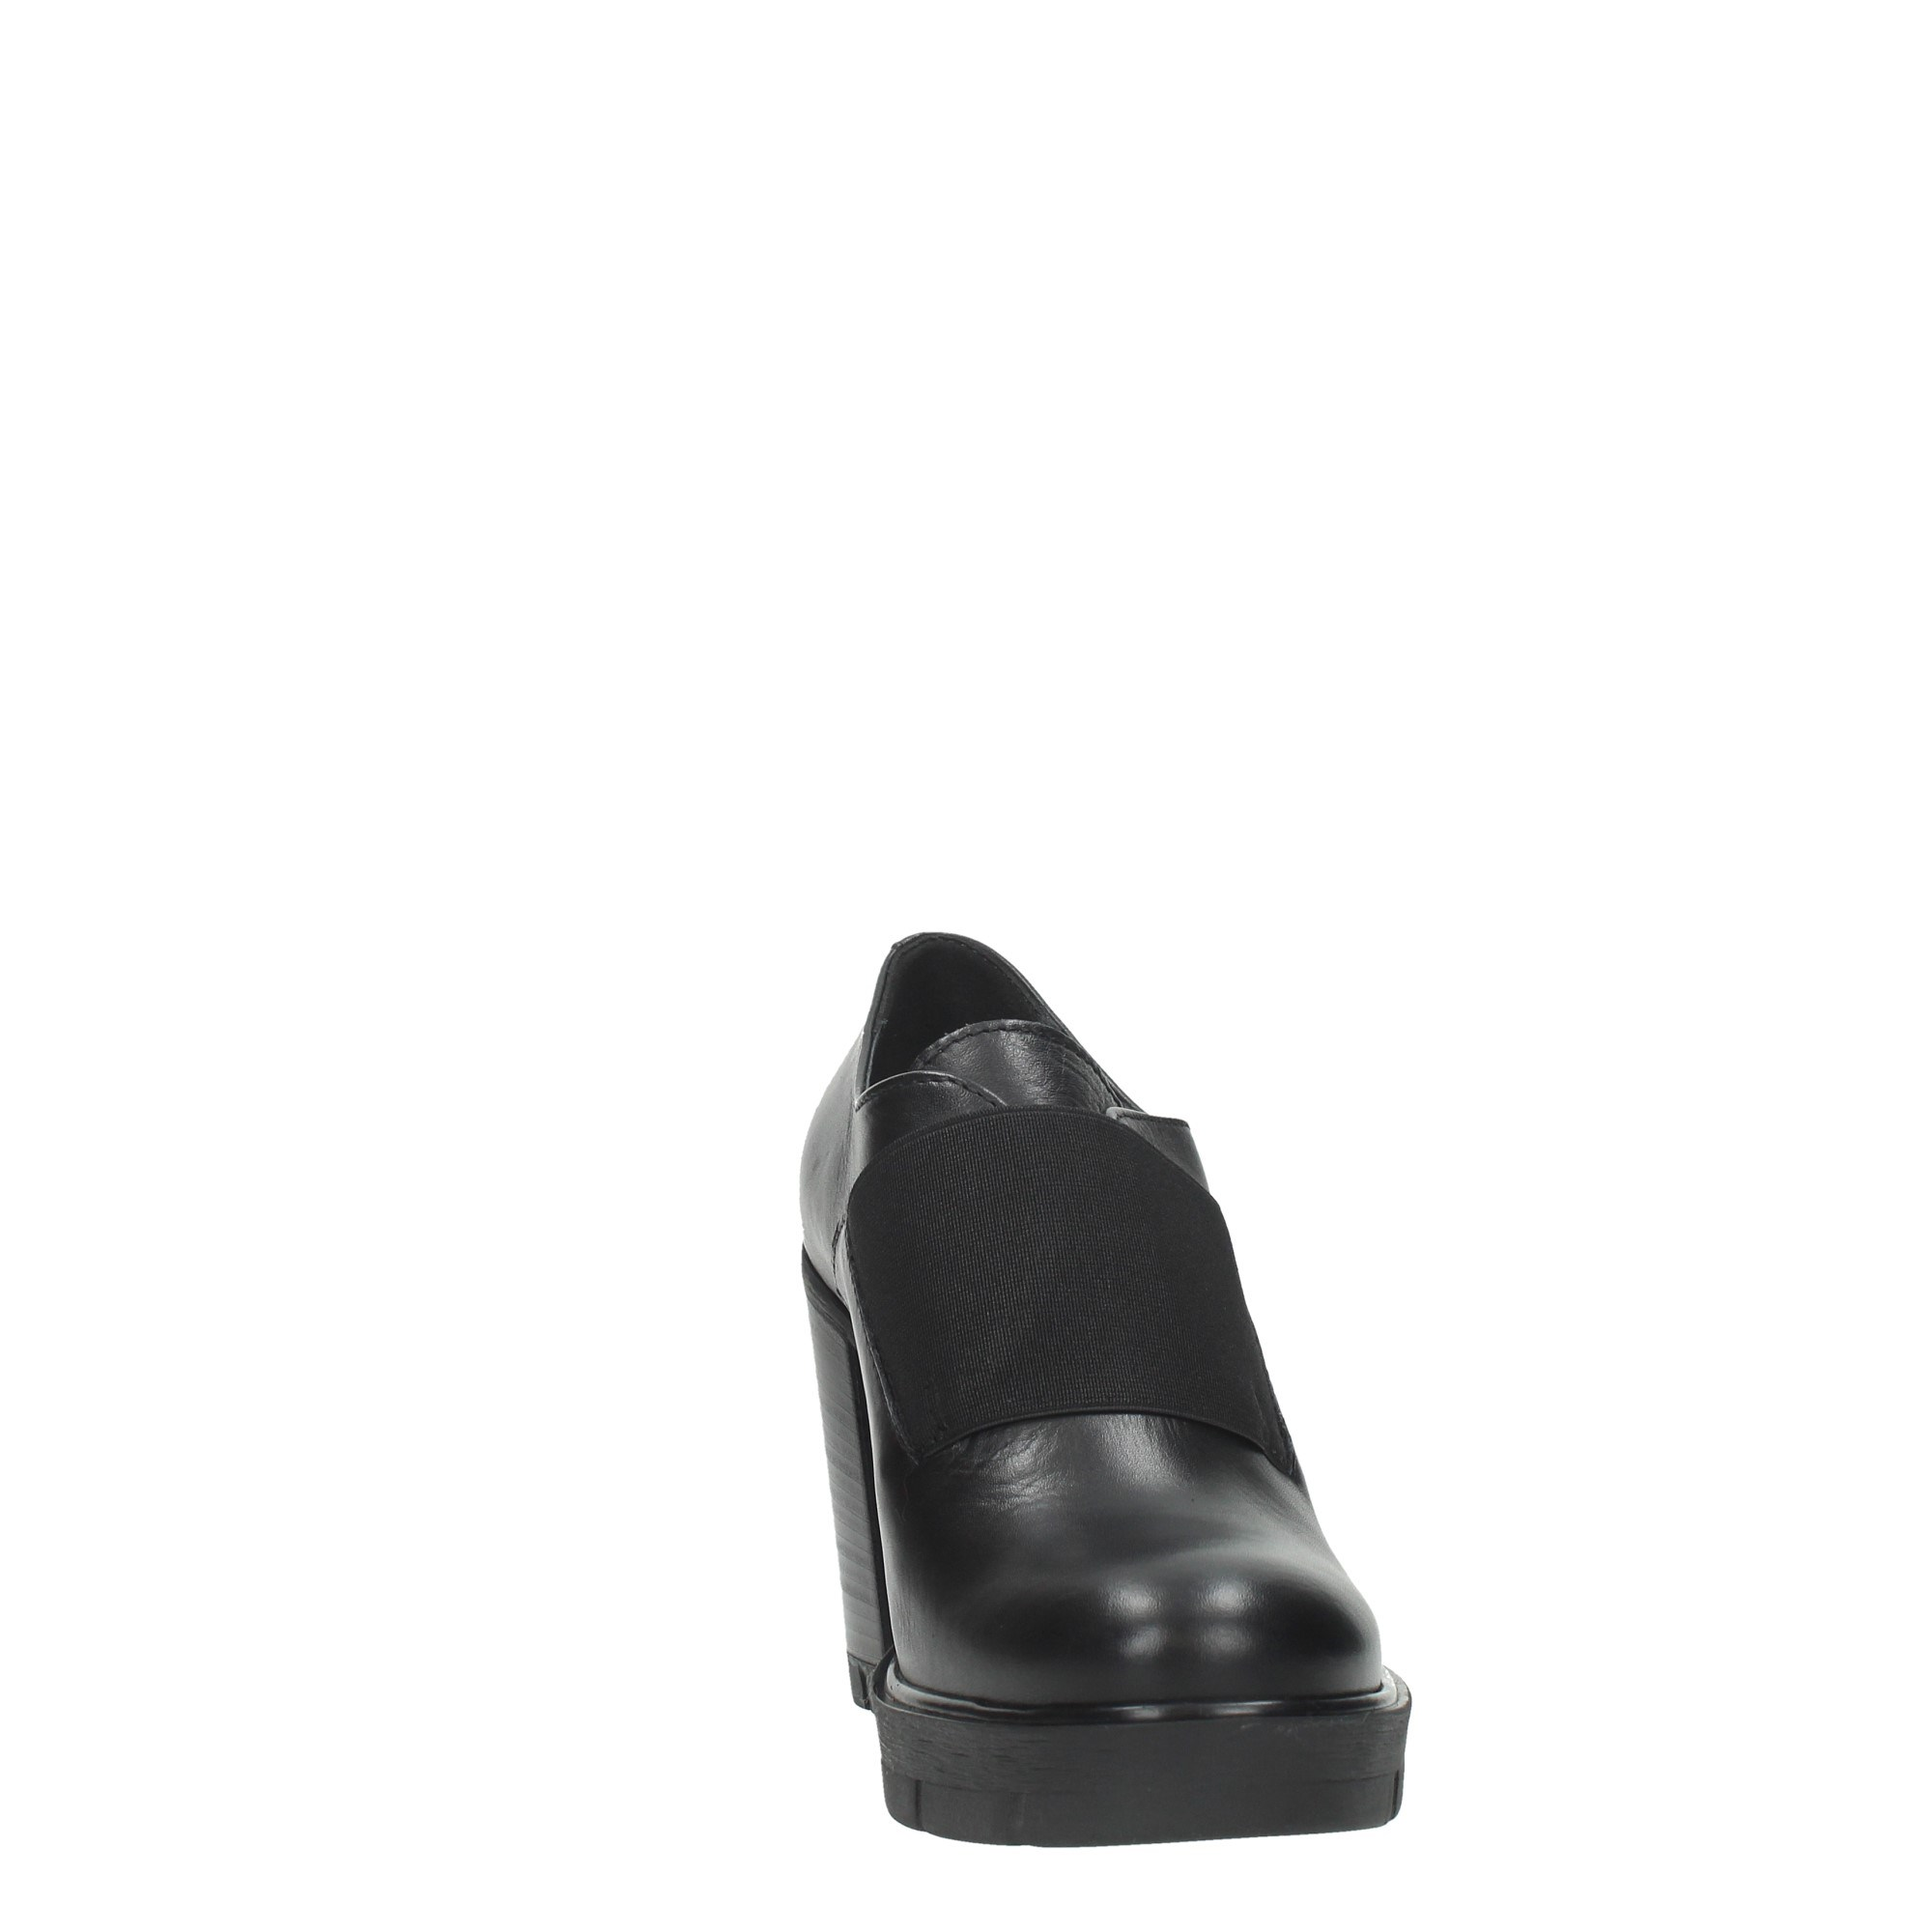 Janet Sport Shoes Women Classic Shoes Black 44835